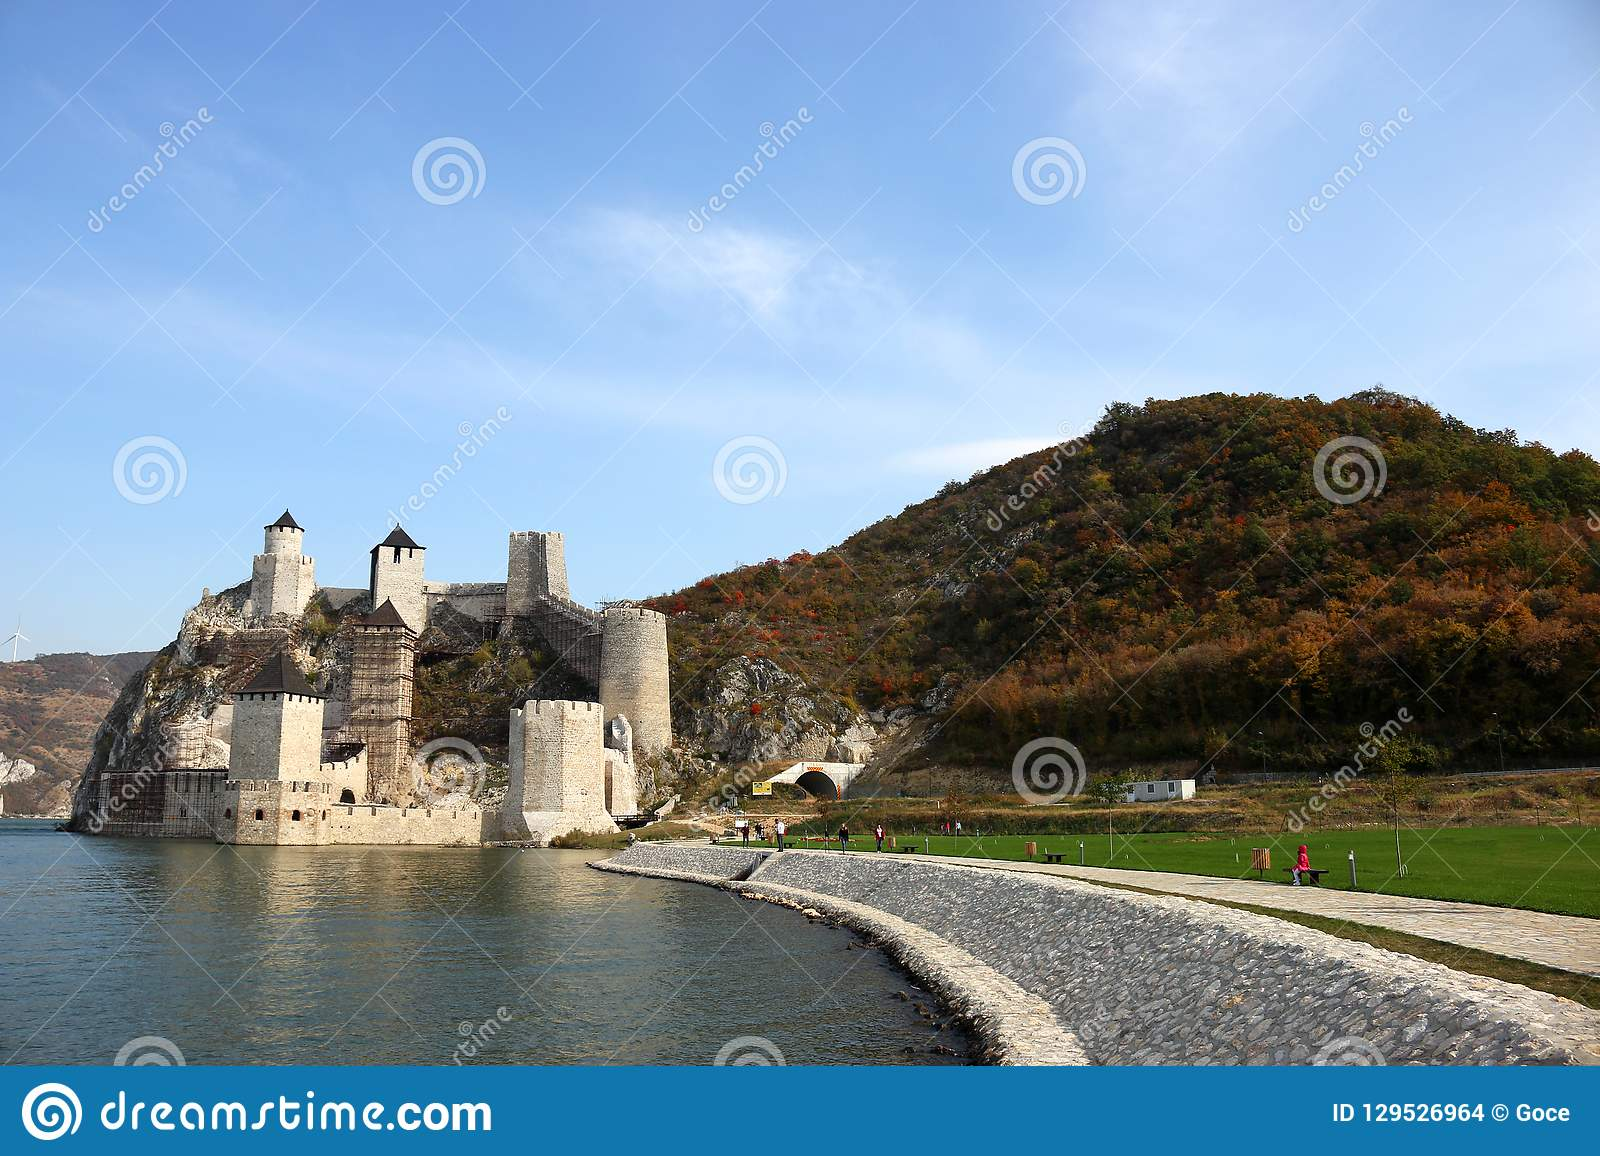 Golubac fortress on Danube autumn season landscape